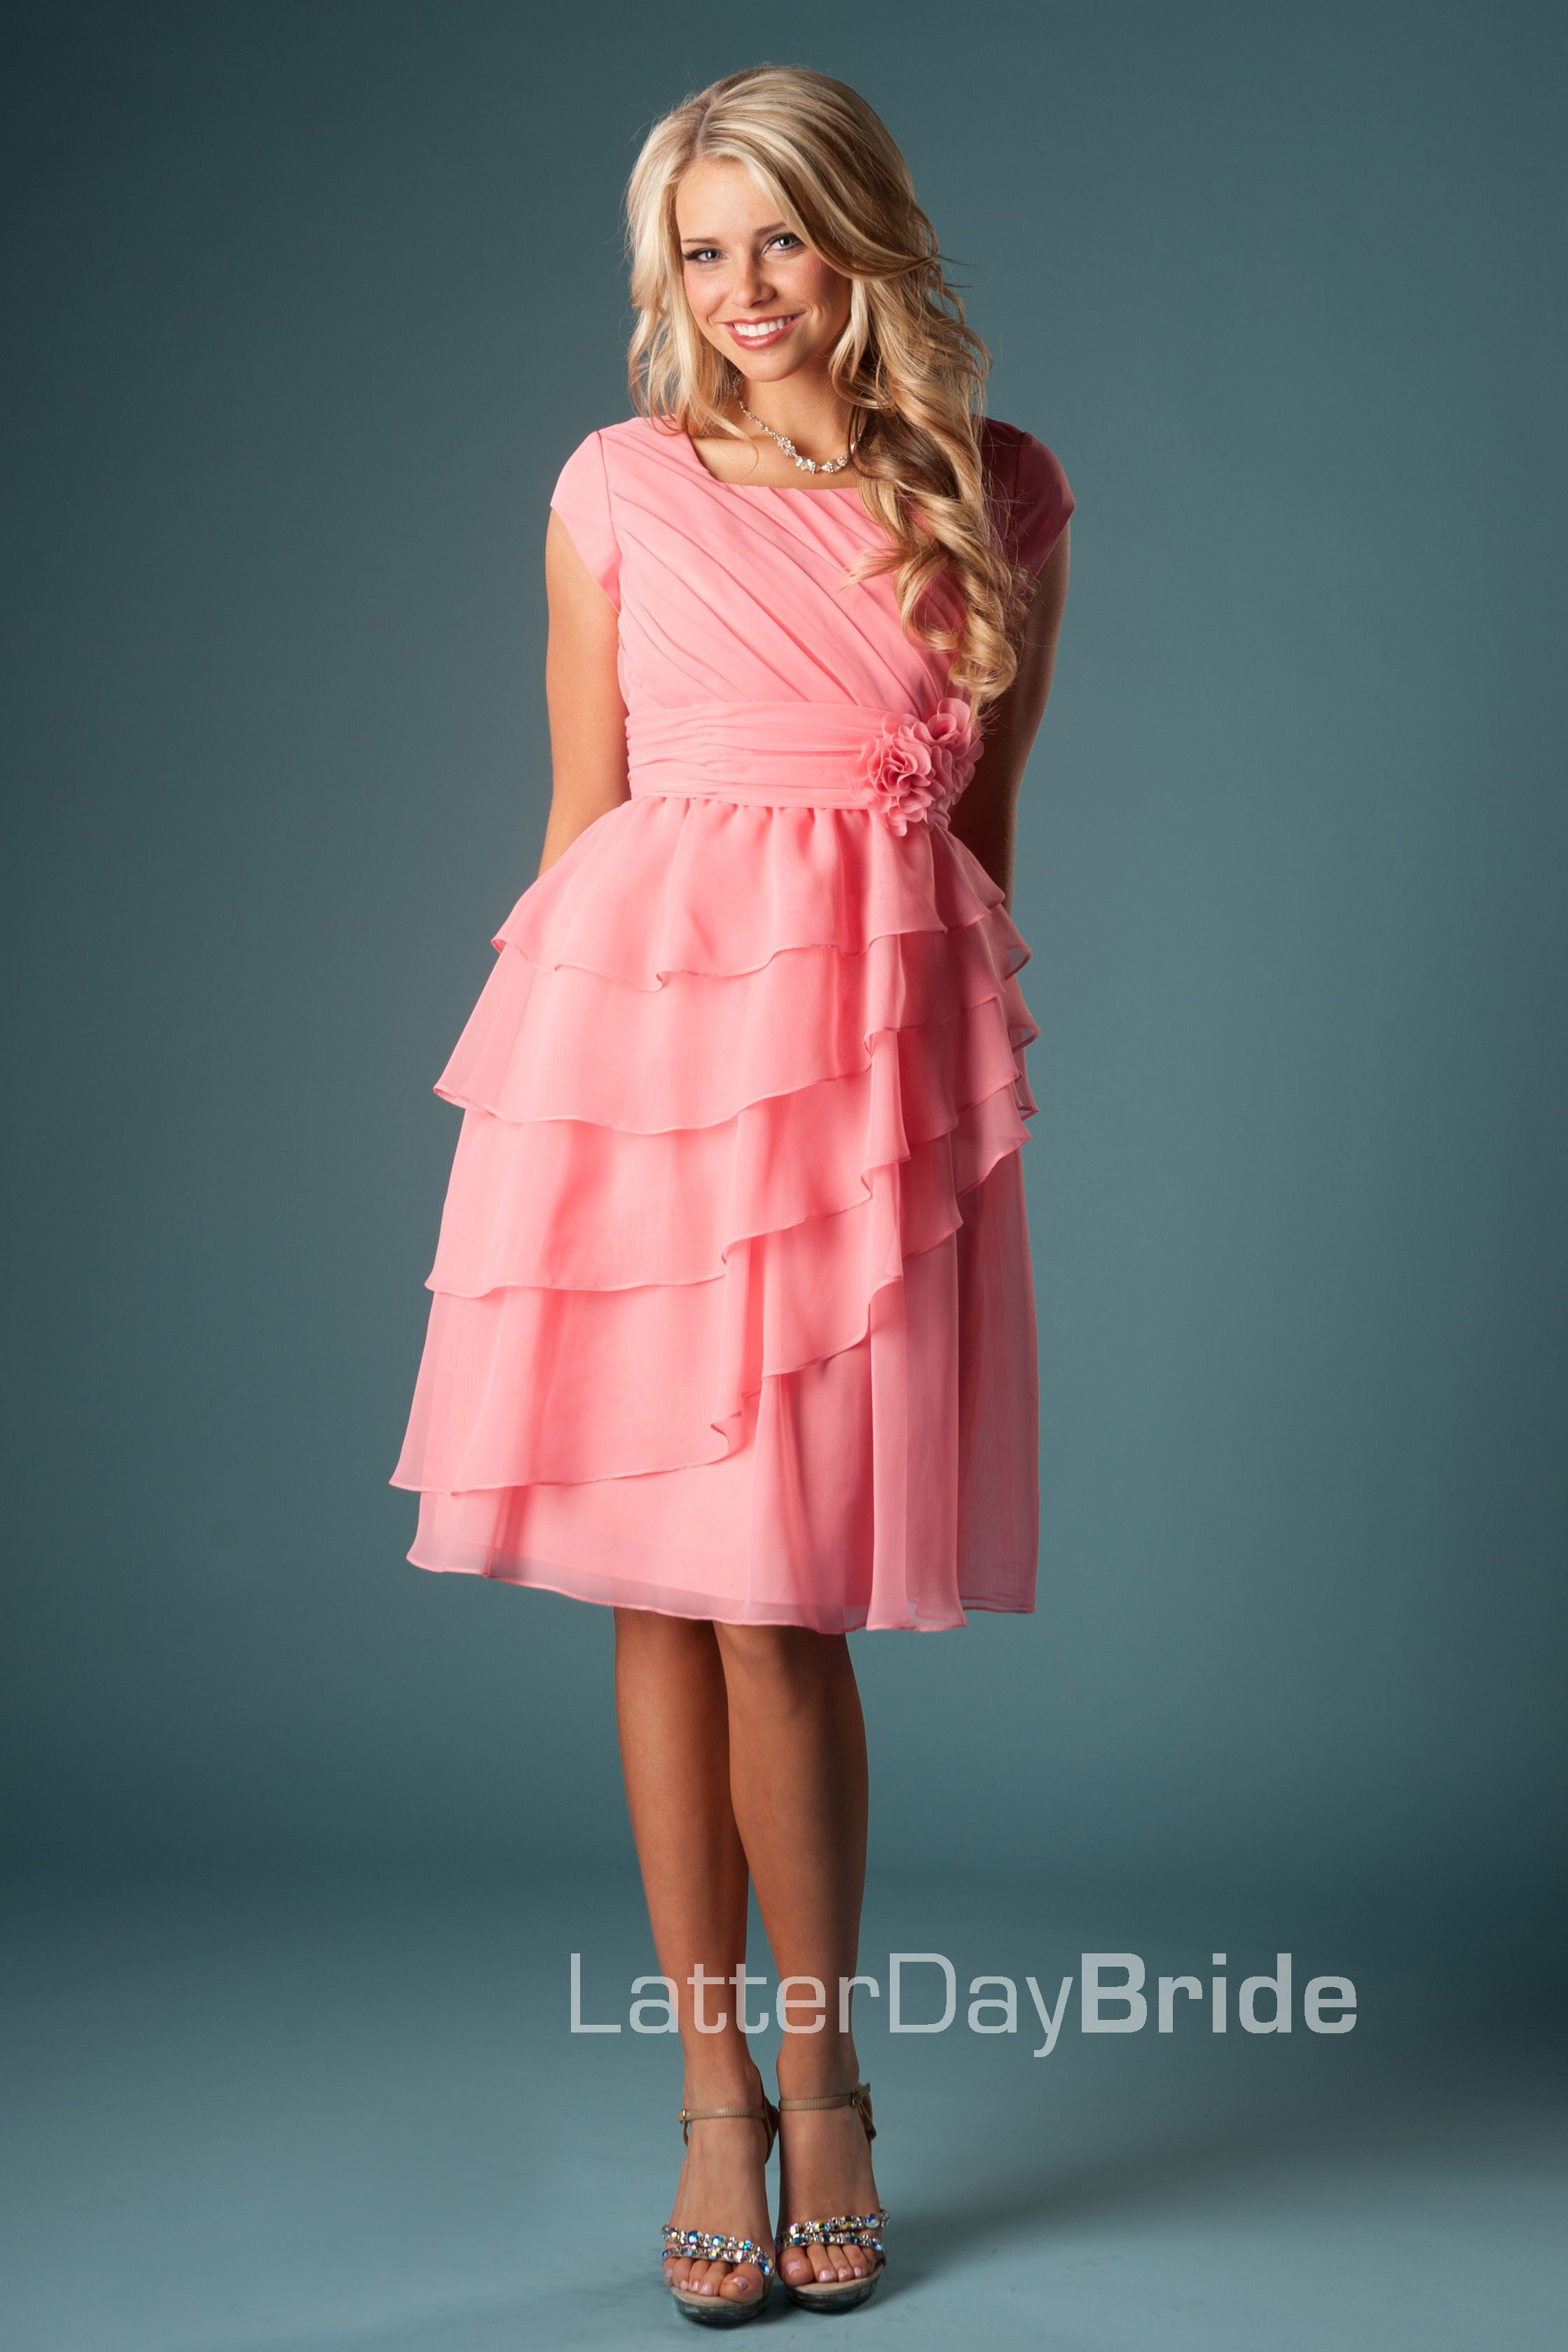 Bridesmaid & Prom, Terra | LatterDayBride & Prom | prom dress ...